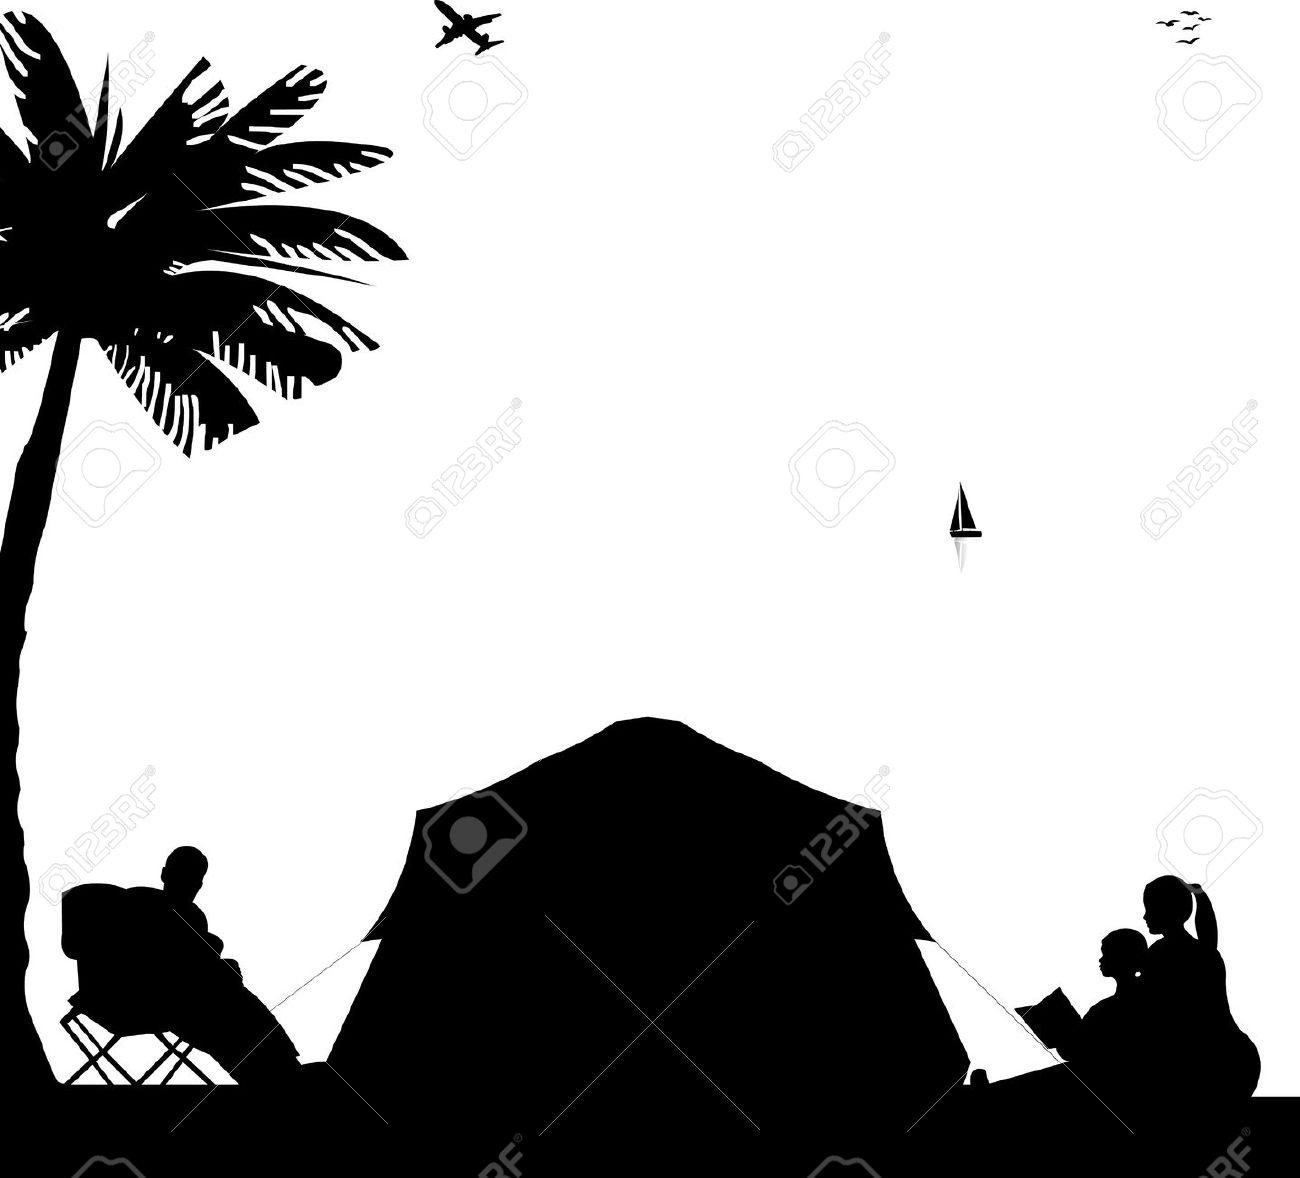 collection of camping. Camp clipart silhouette